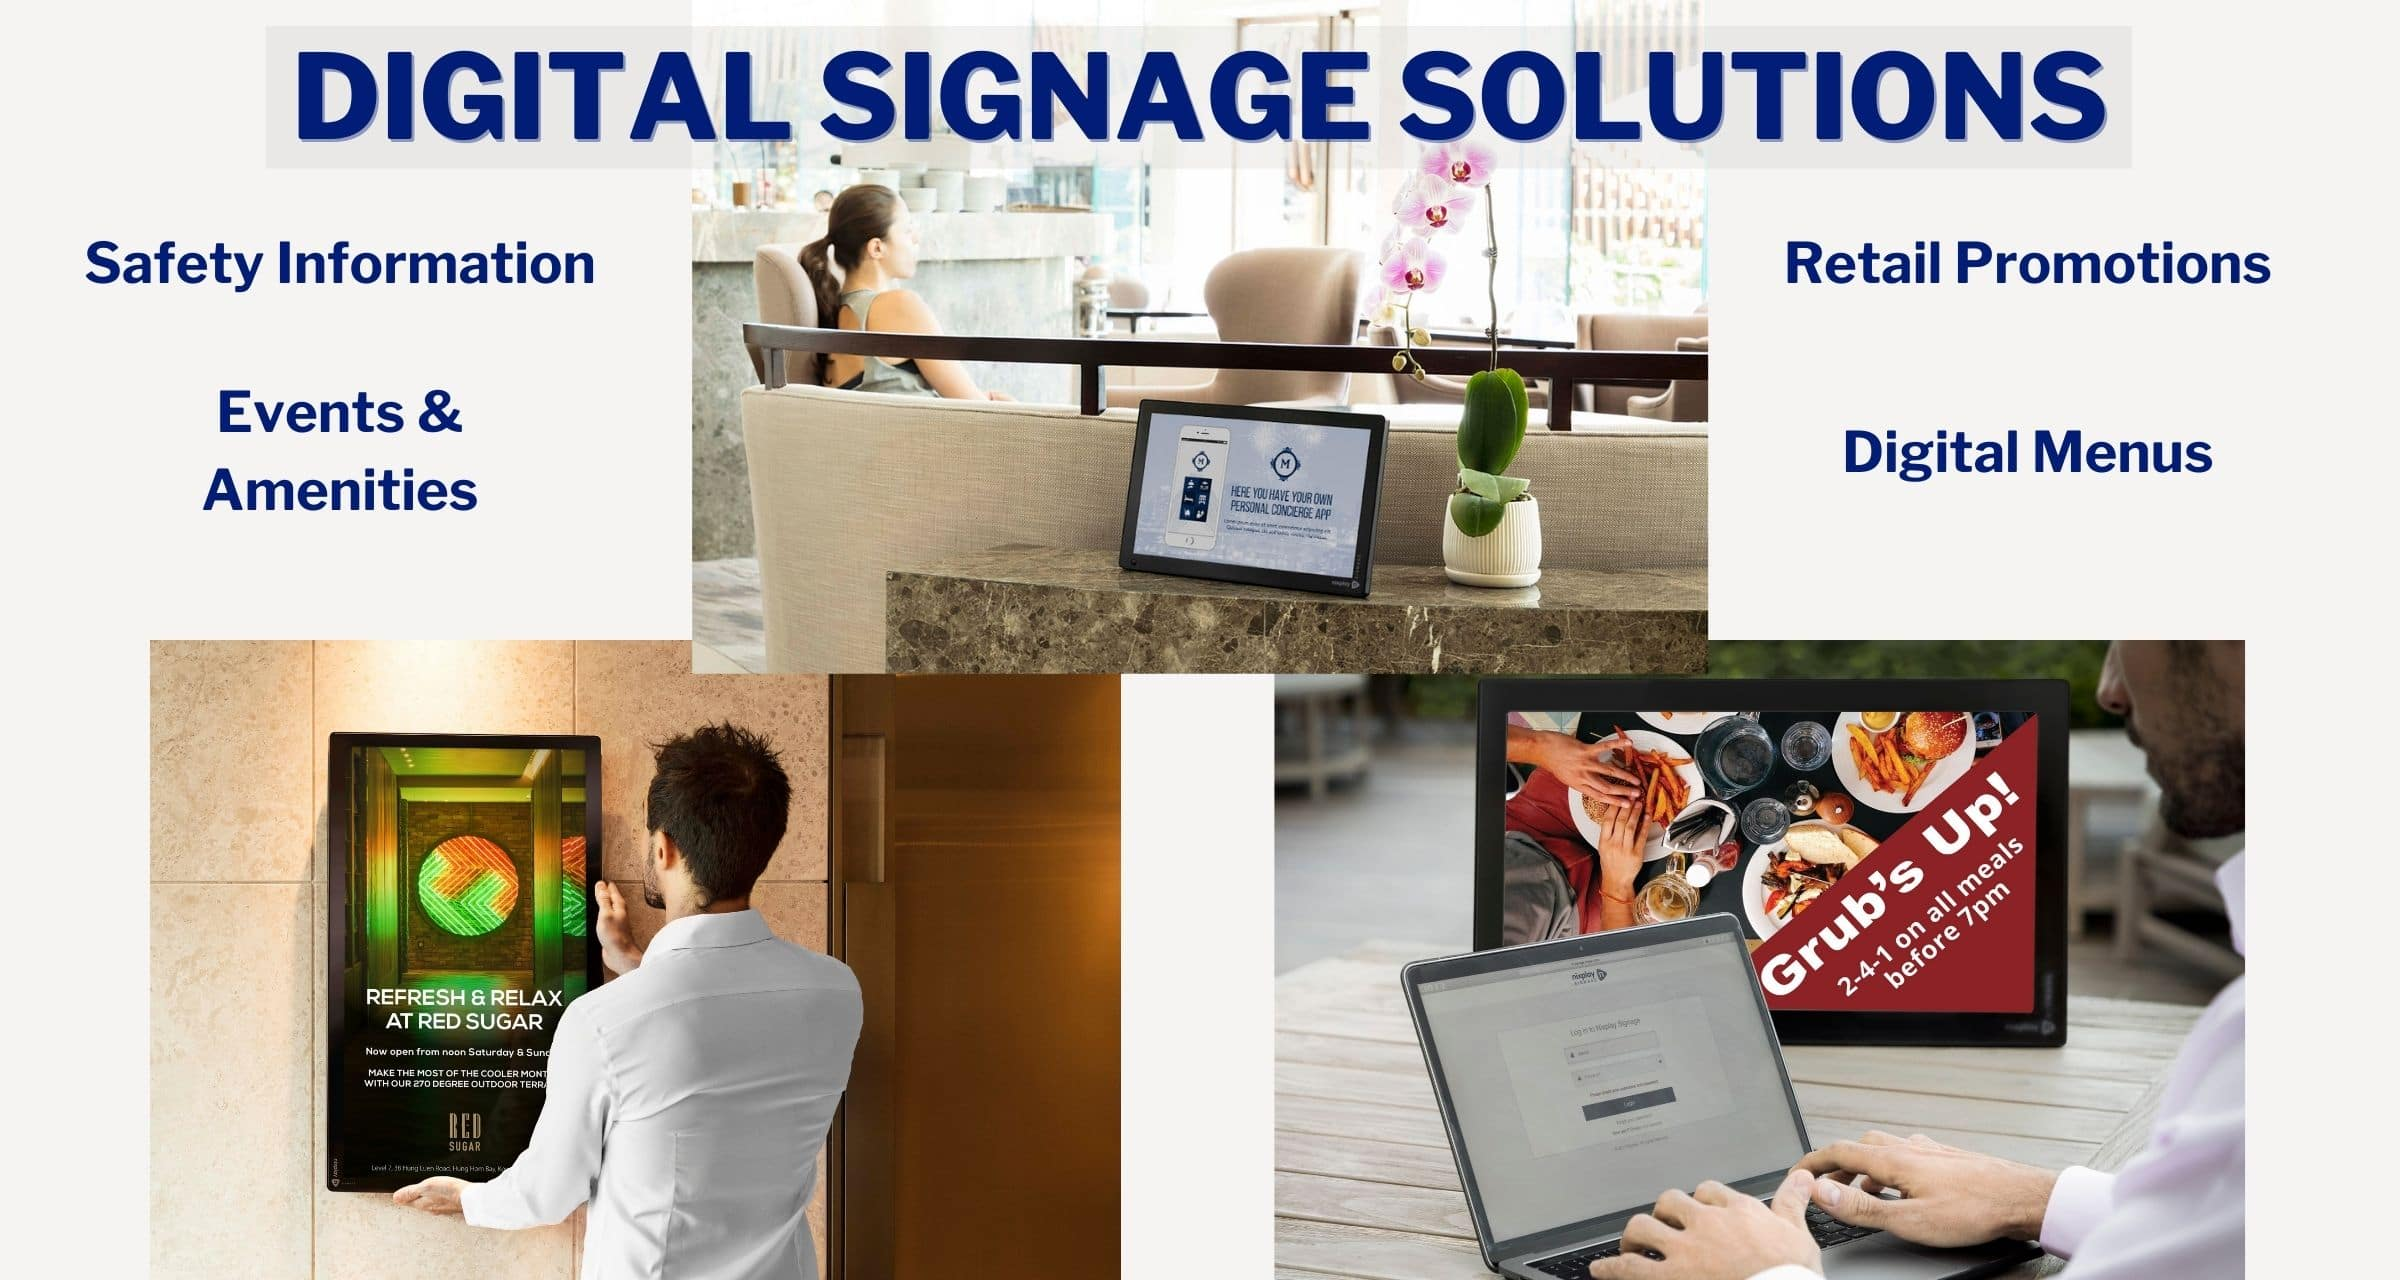 Nixplay Digital Signage Solutions for Safety Information, Events & Amenities, Retail Promotions, and Digital Menus from Its All About Satellites